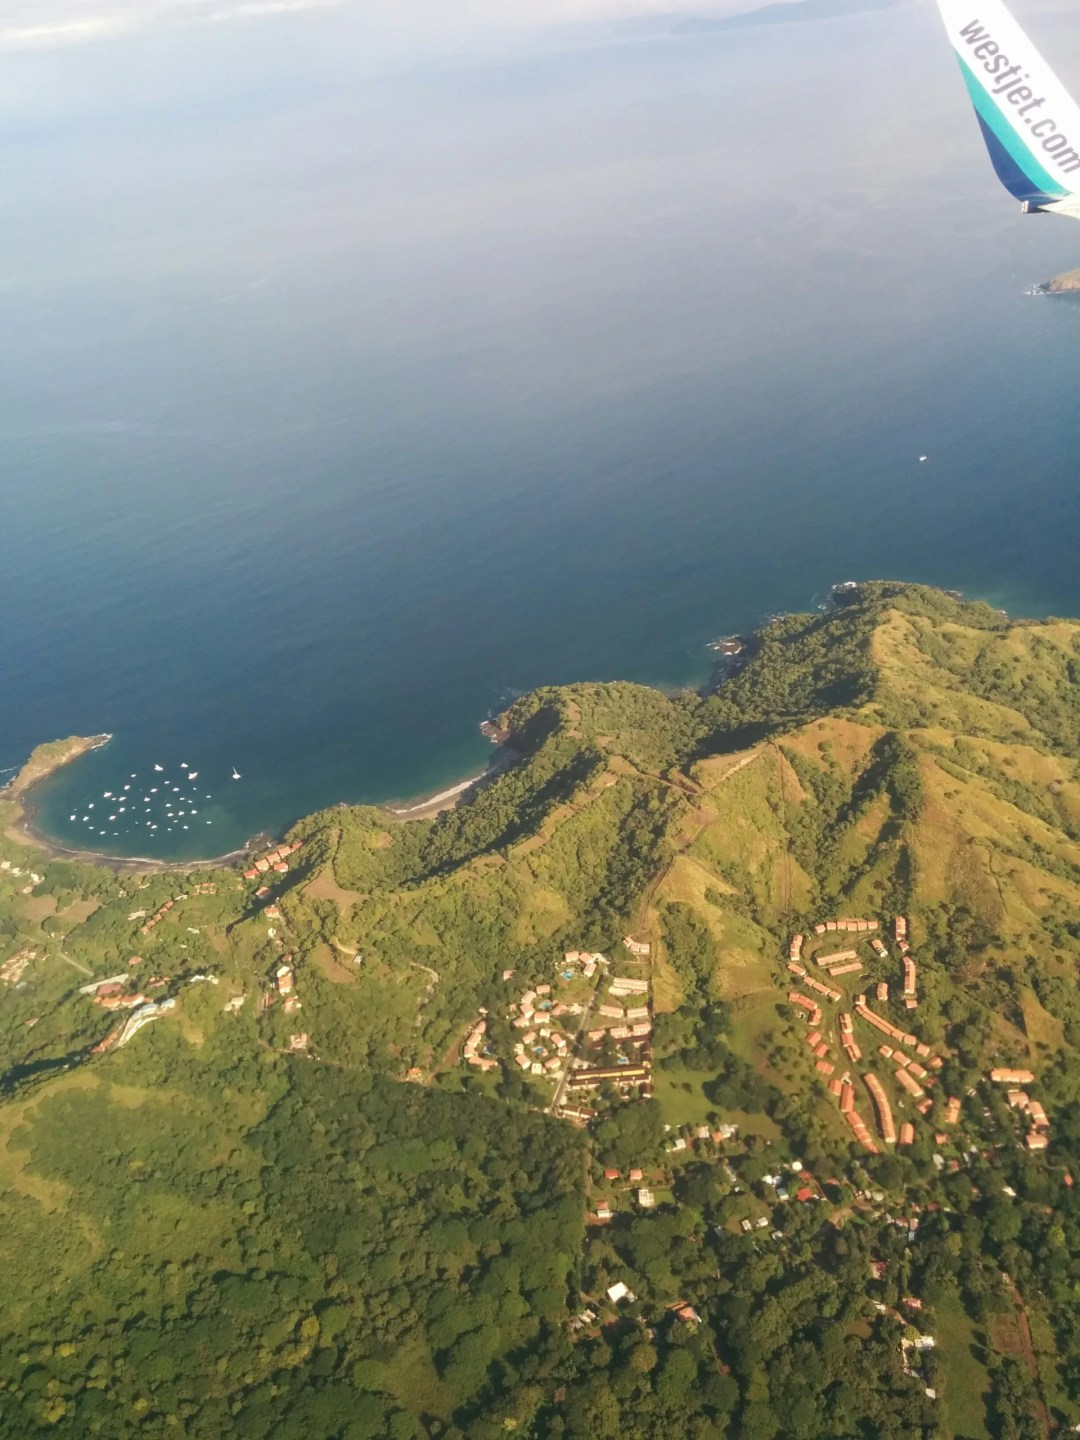 The Pacific coast of Costa Rica, approaching Liberia